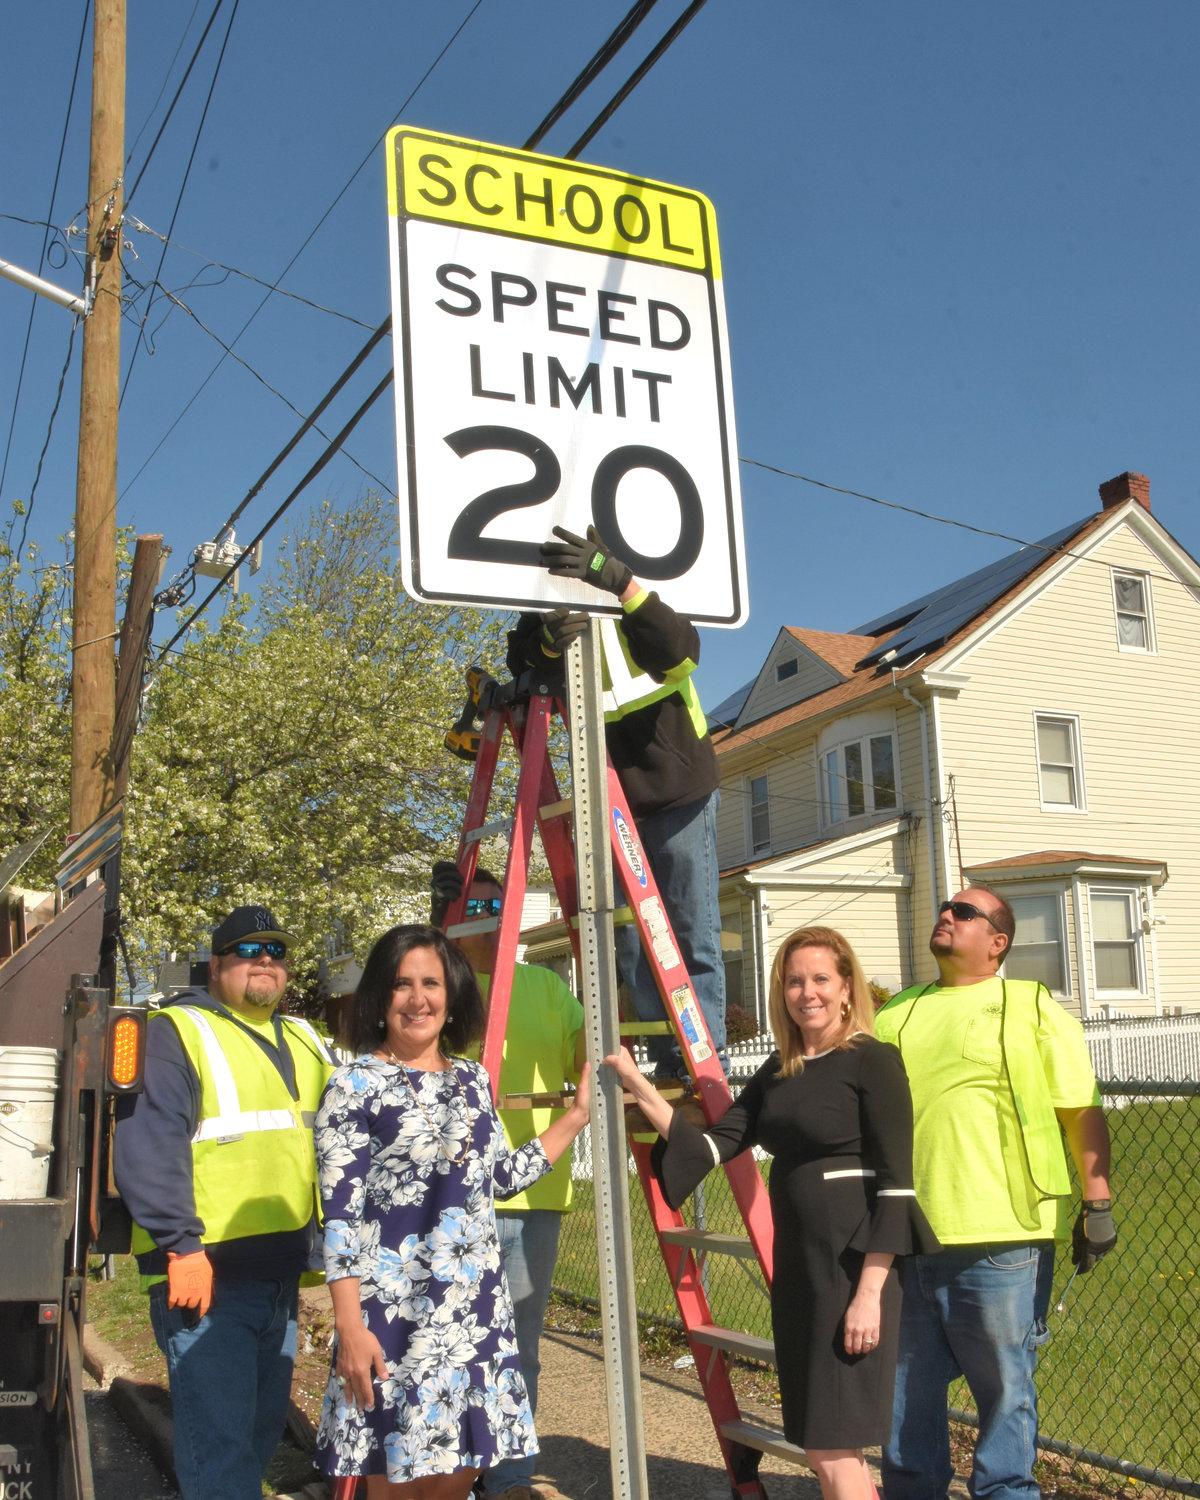 Town of Hempstead Supervisor Laura Gillen, right, and Town Clerk Sylvia Cabana oversaw the installation of the school zone sign near Elmont Road.